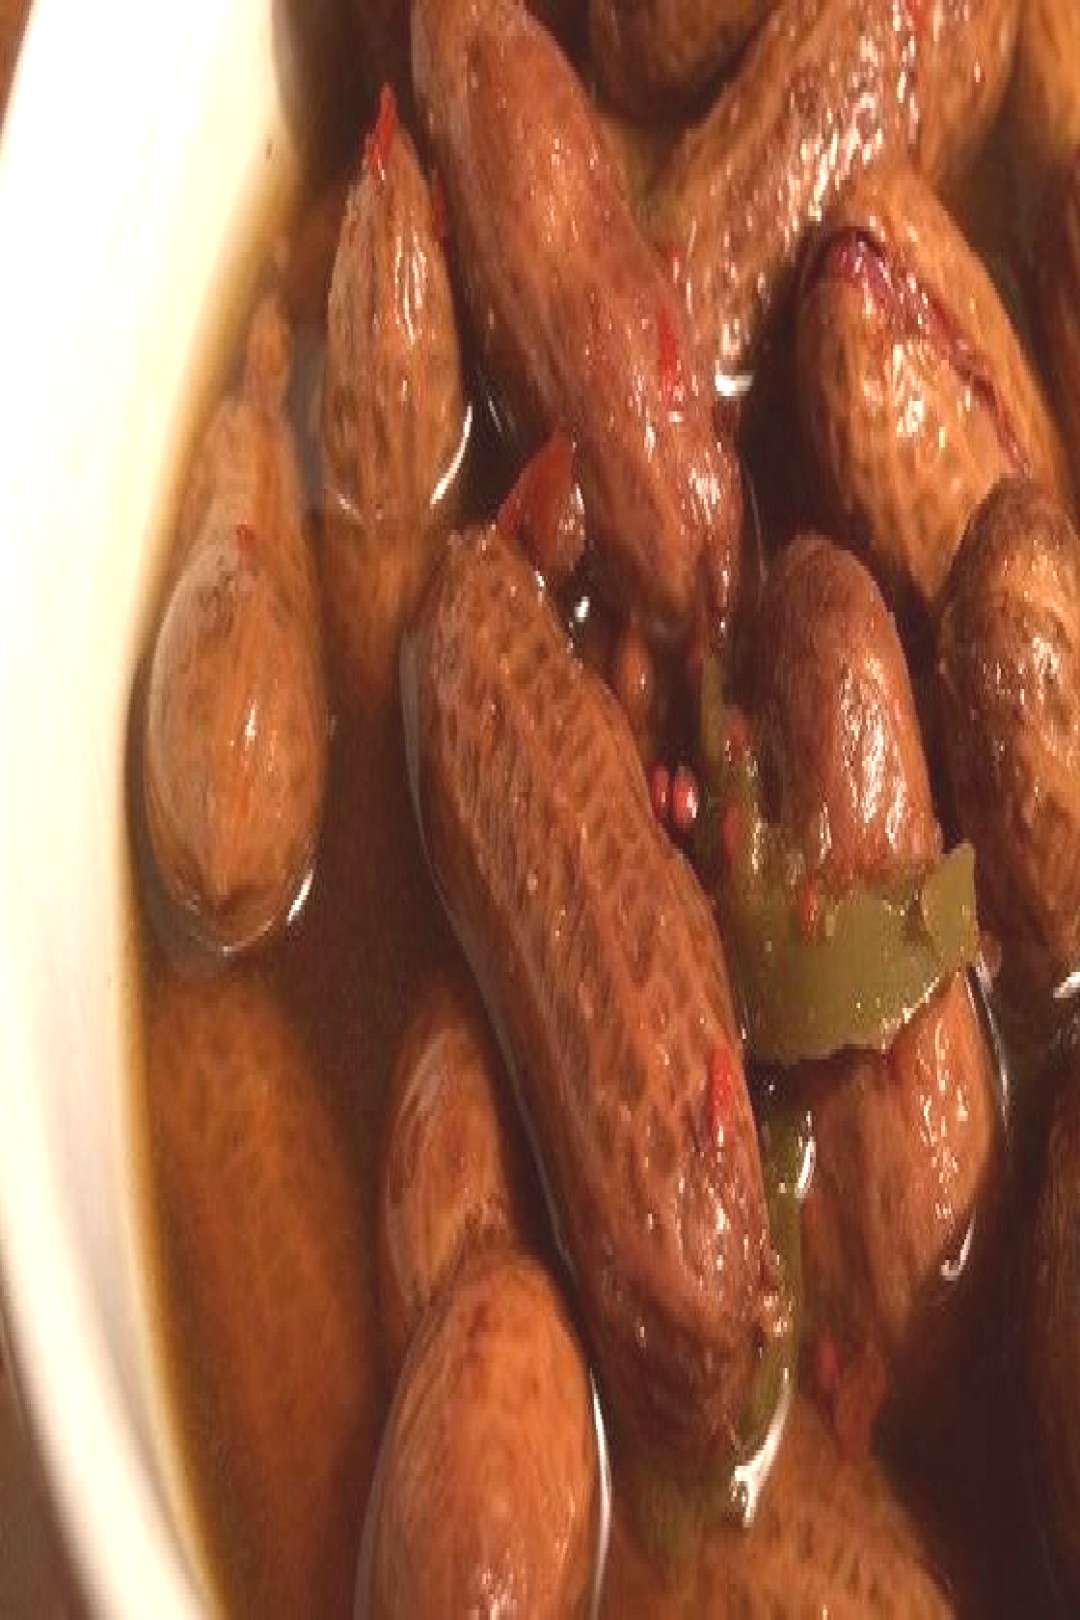 Rachaels Superheated Cajun Boiled Peanuts Recipe - Raw peanuts in their shells simmer in a salty,